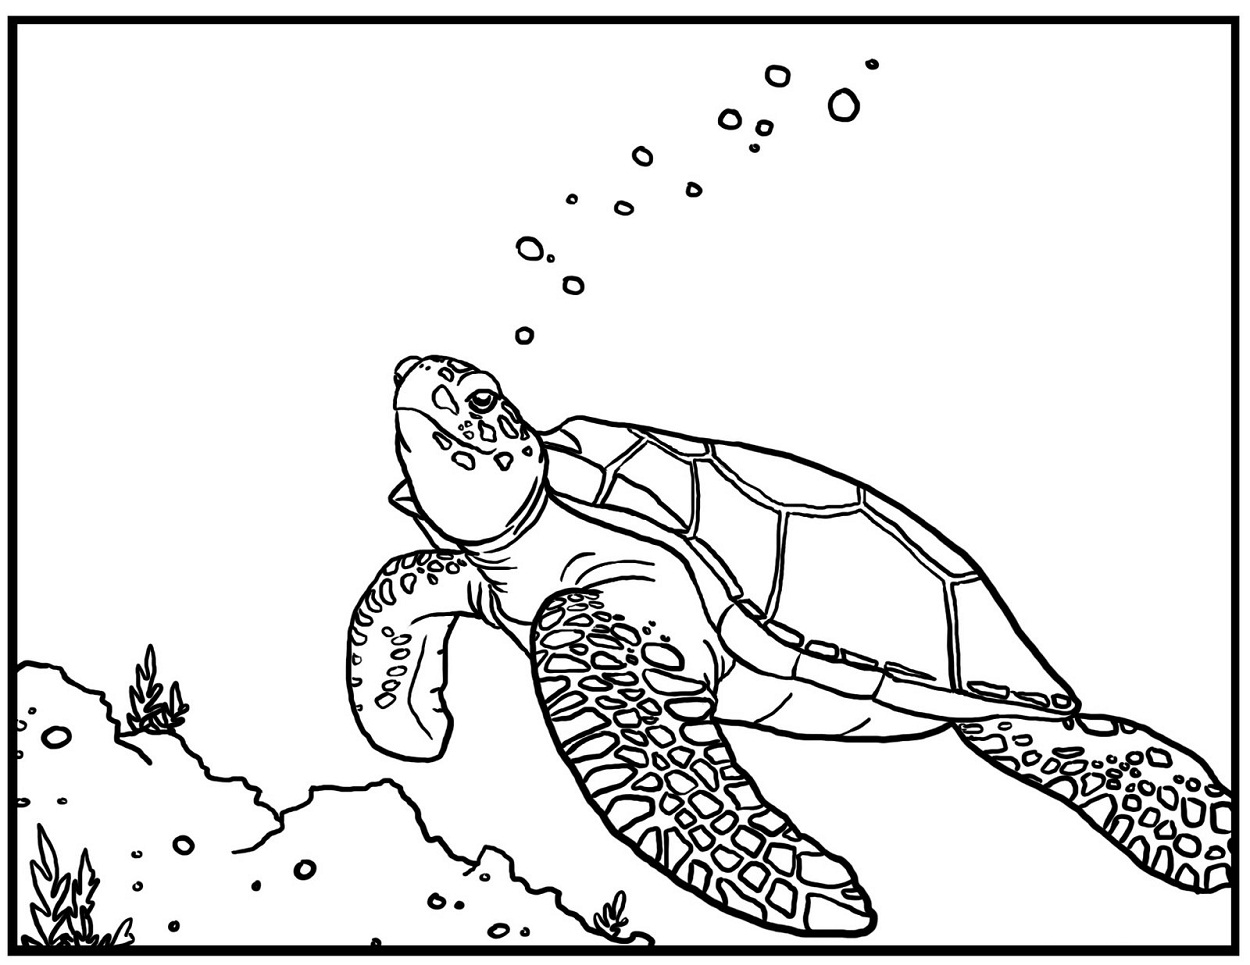 turtle coloring book page ninja turtles coloring pages free download on clipartmag page book turtle coloring